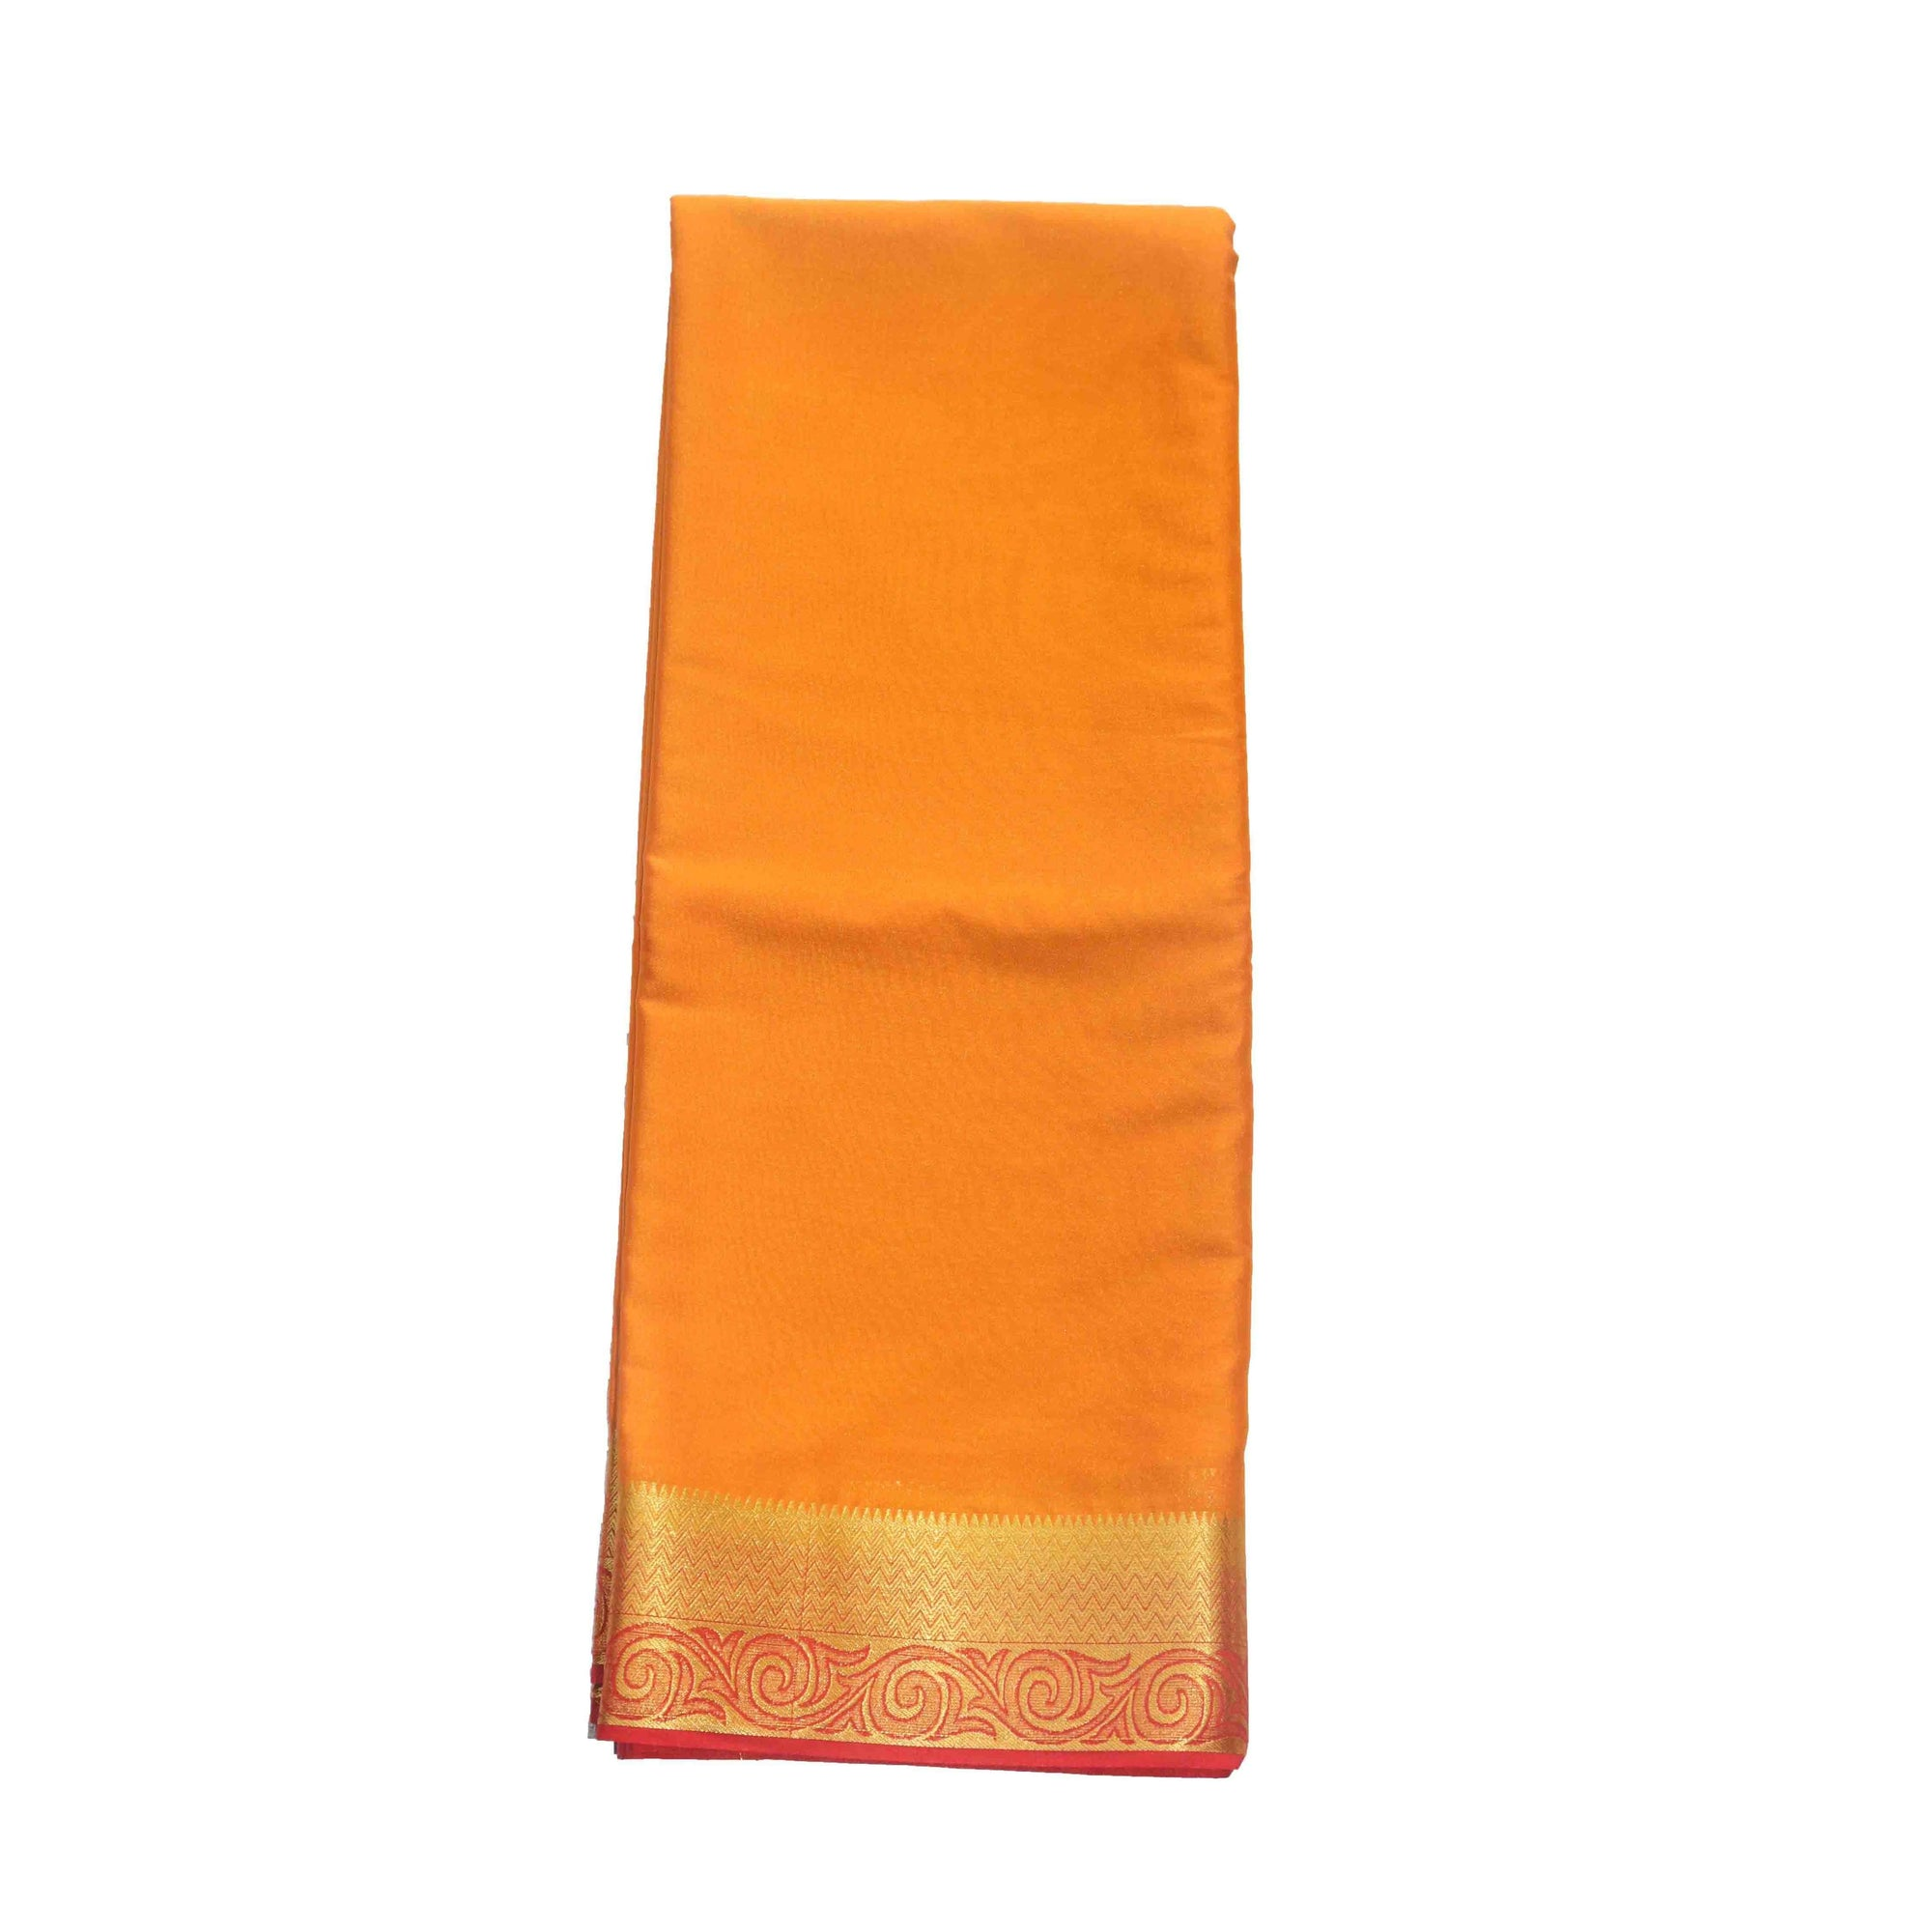 Arars Women's Kanchipuram Kanjivaram Pattu Style Mysore Crepe Plain Silk Saree With Blouse (275 MUSTARD MAROON )